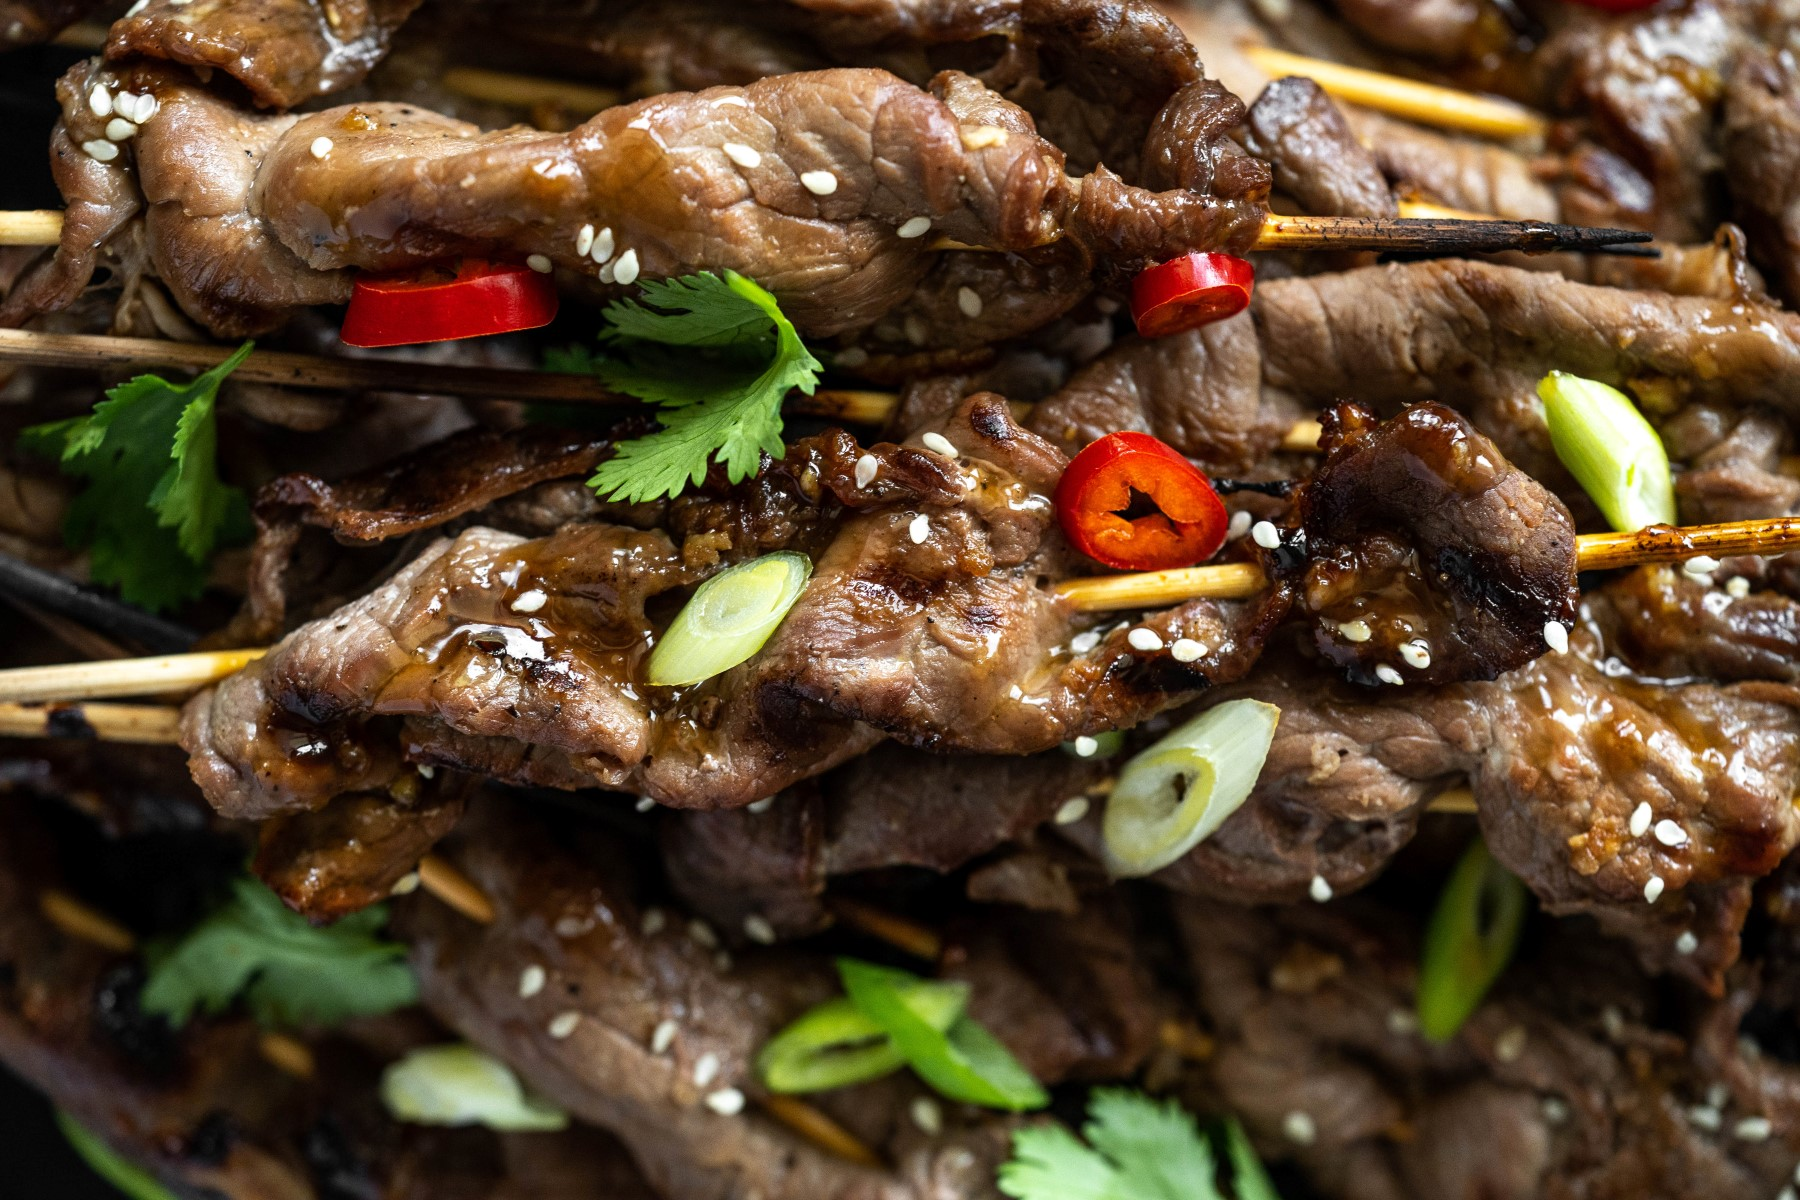 Grilled Teriyaki beef kabobs garnished with sesame seeds, chopped green onions, and sliced red chili peppers, with cilantro leaves.